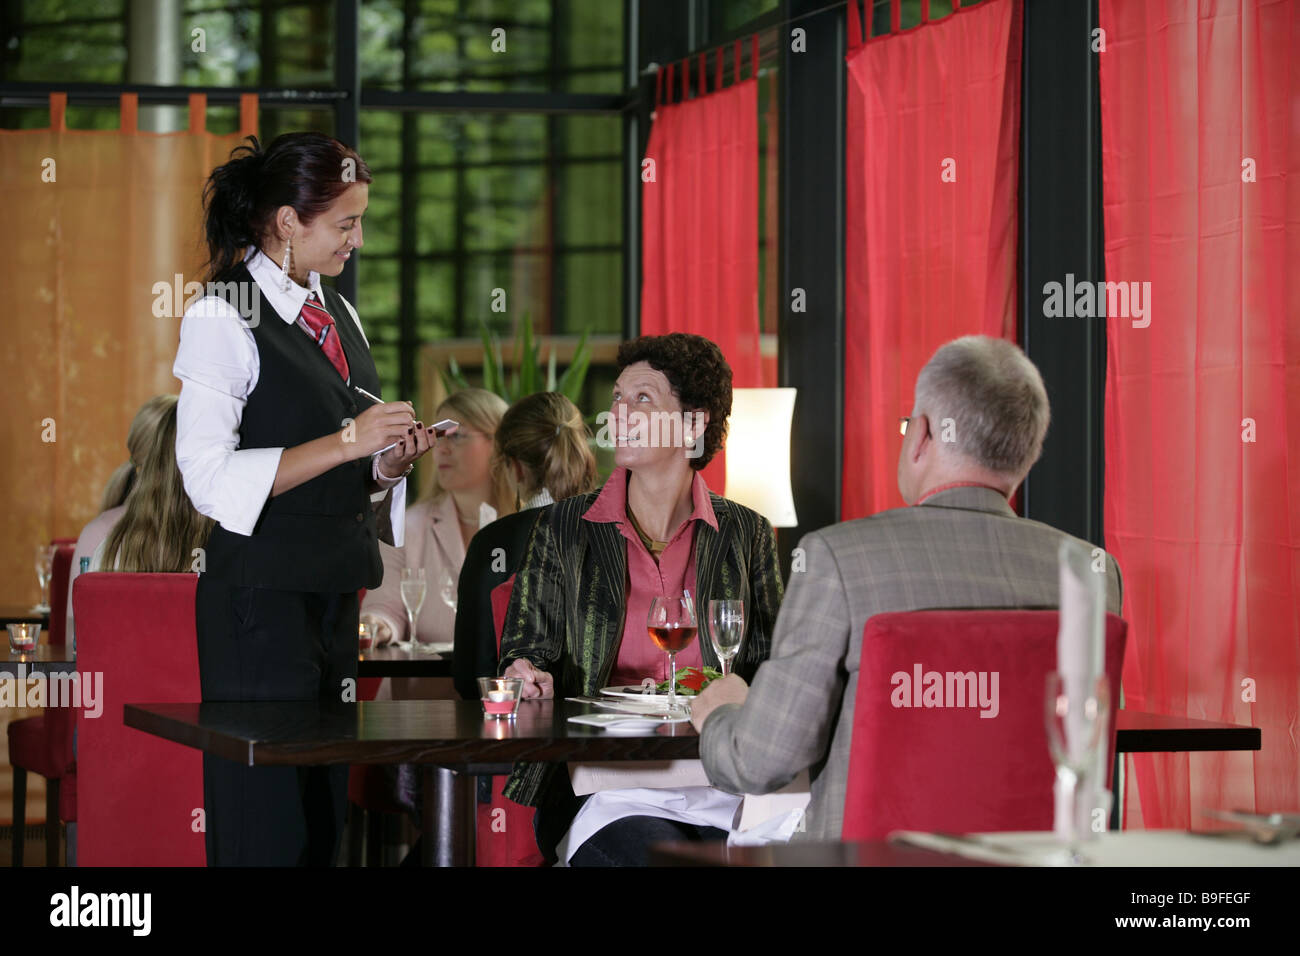 Germany Saarland Orscholz Cloef-Atrium restaurant couple service Employed architecture service occupation order - Stock Image